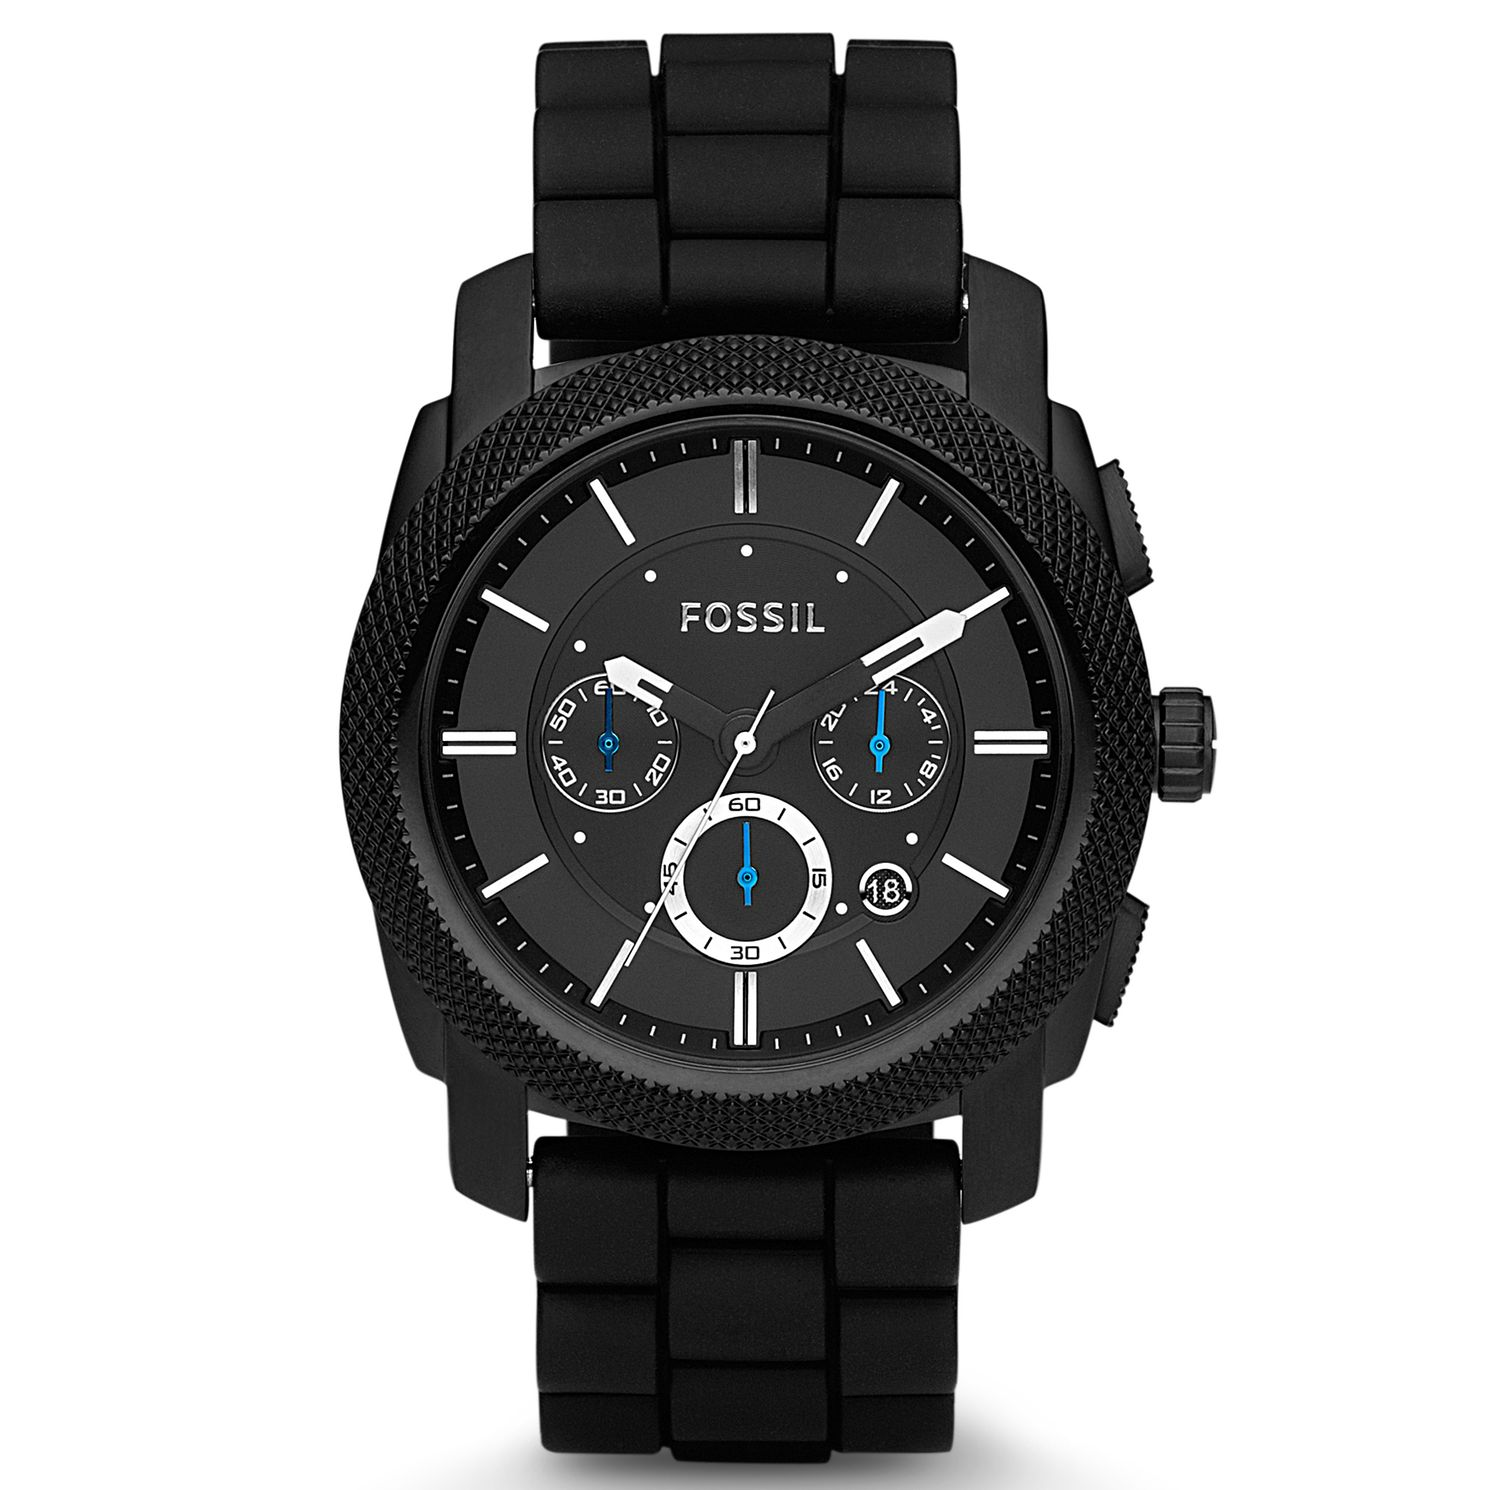 Fossil Men's Chronograph Black Rubber Strap Watch - Product number 8529884